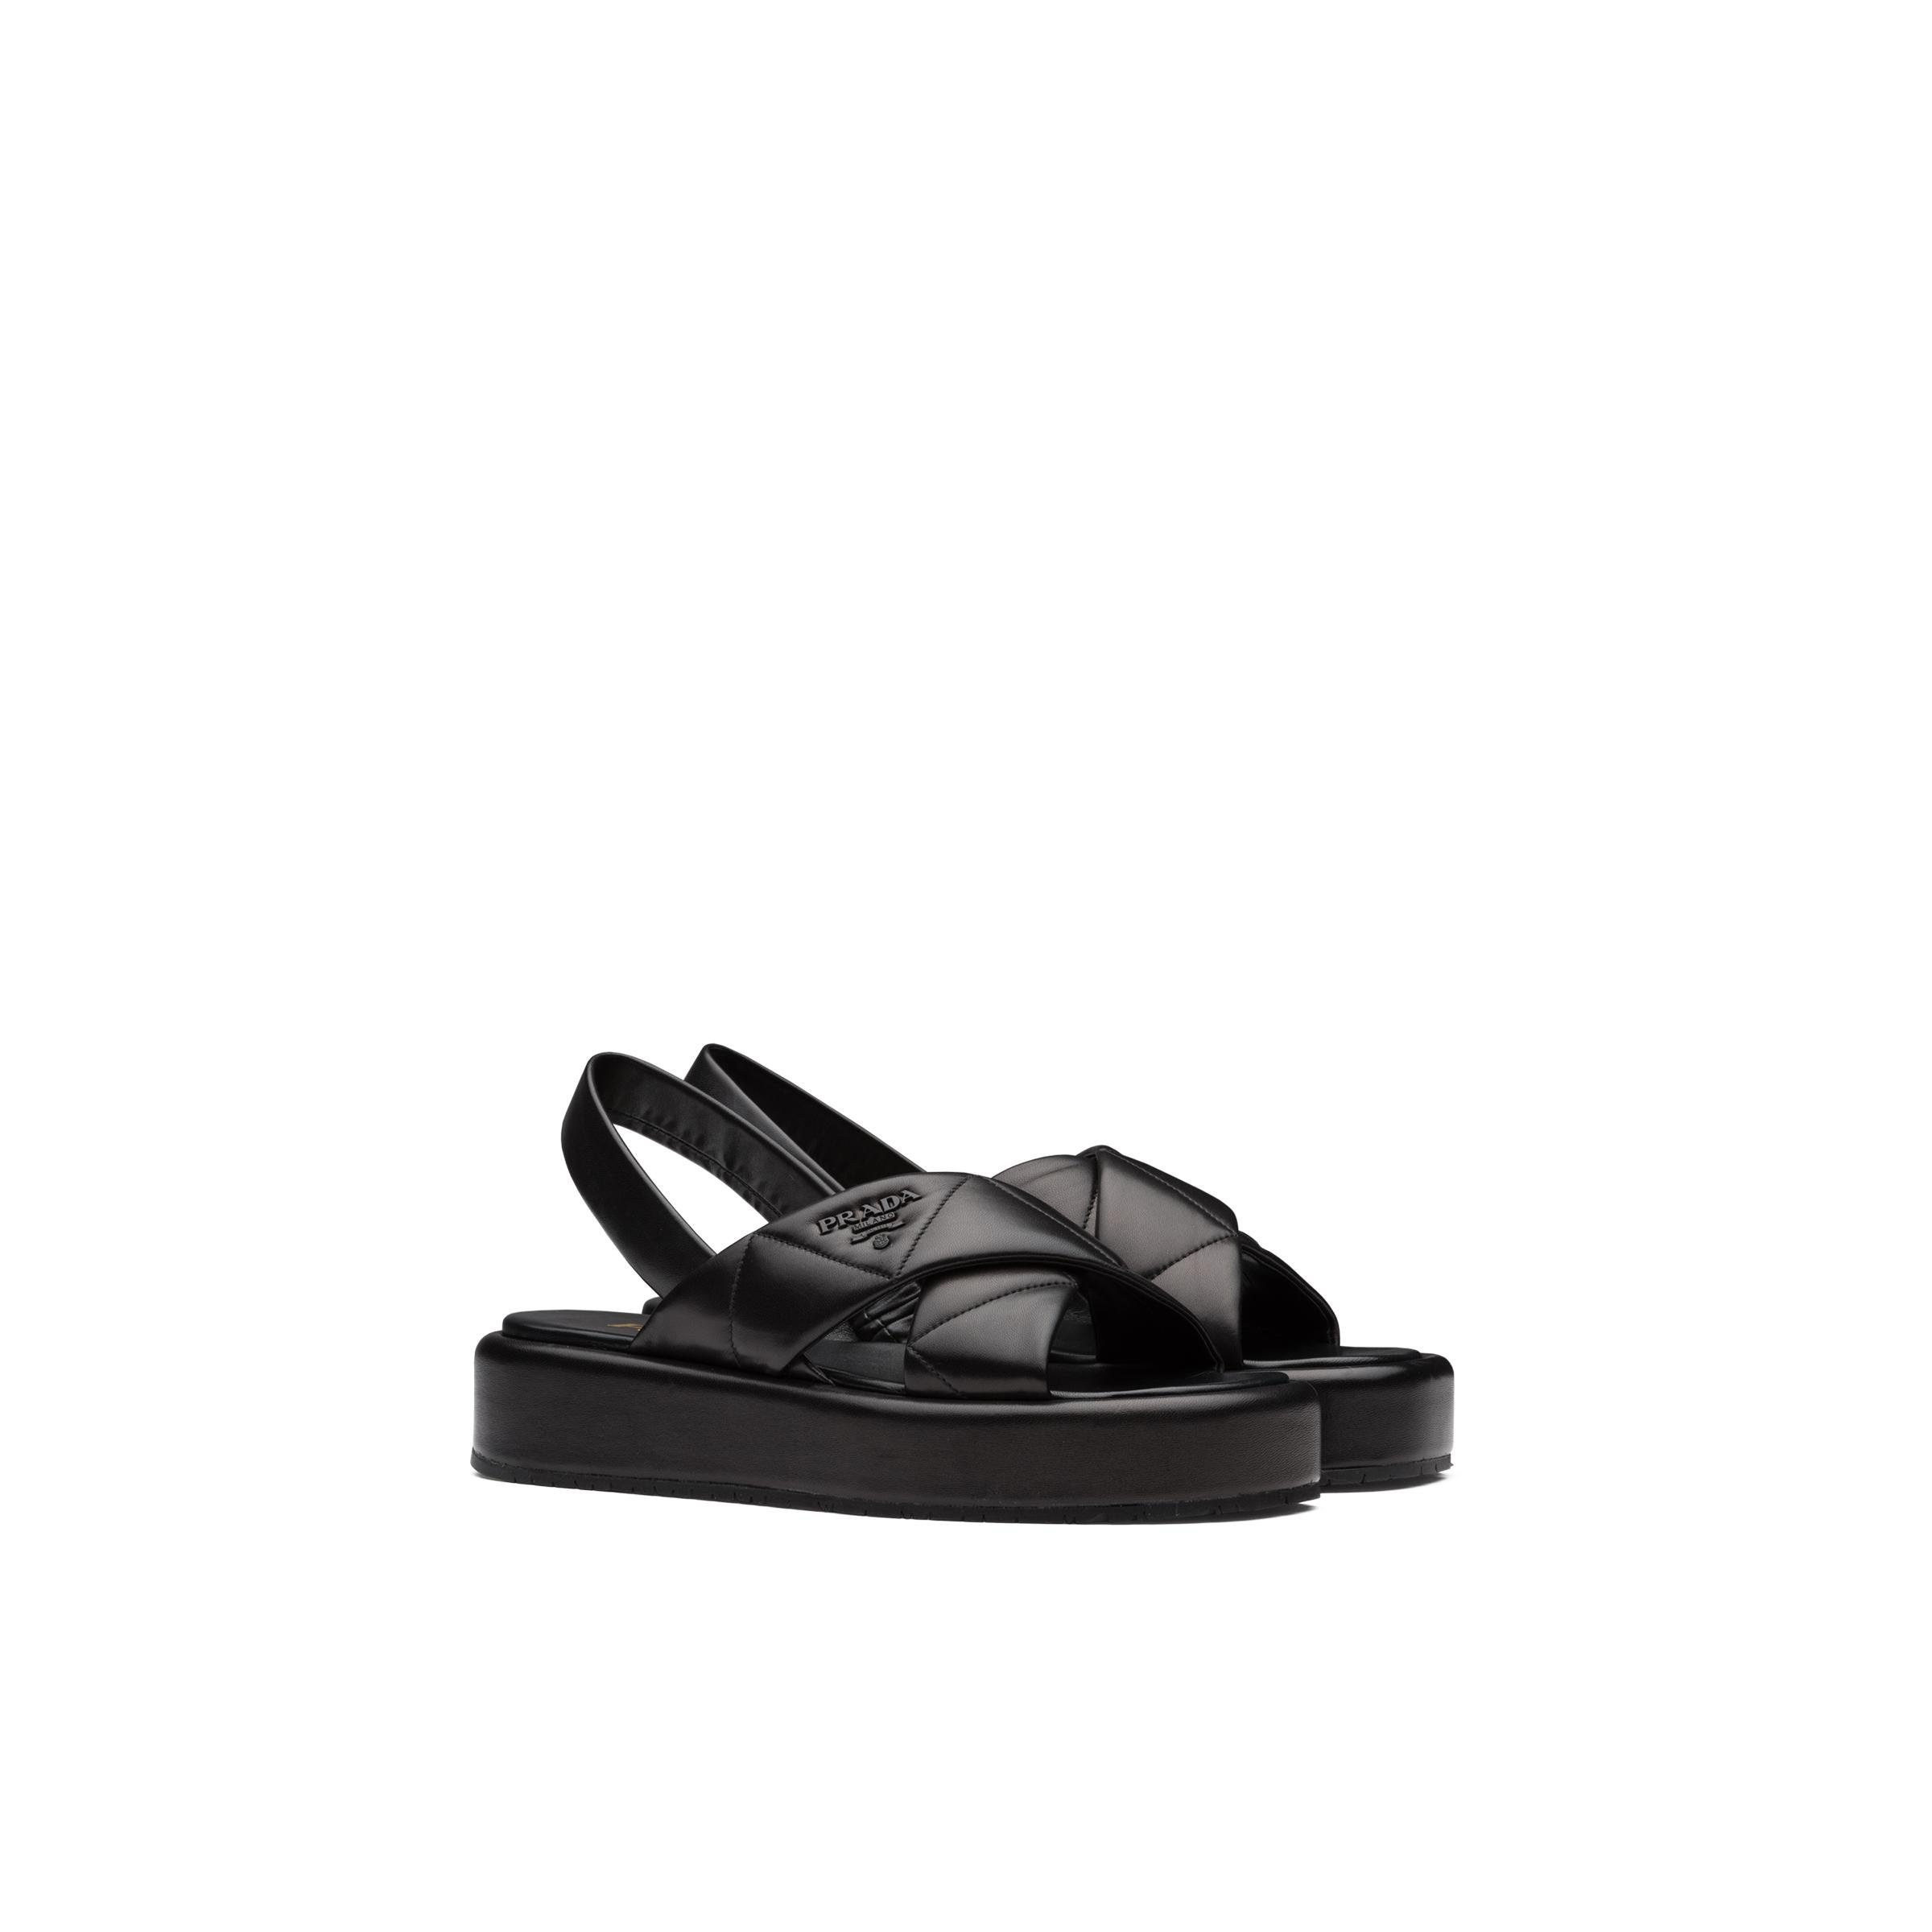 Quilted Nappa Leather Flatform Sandals Women Black